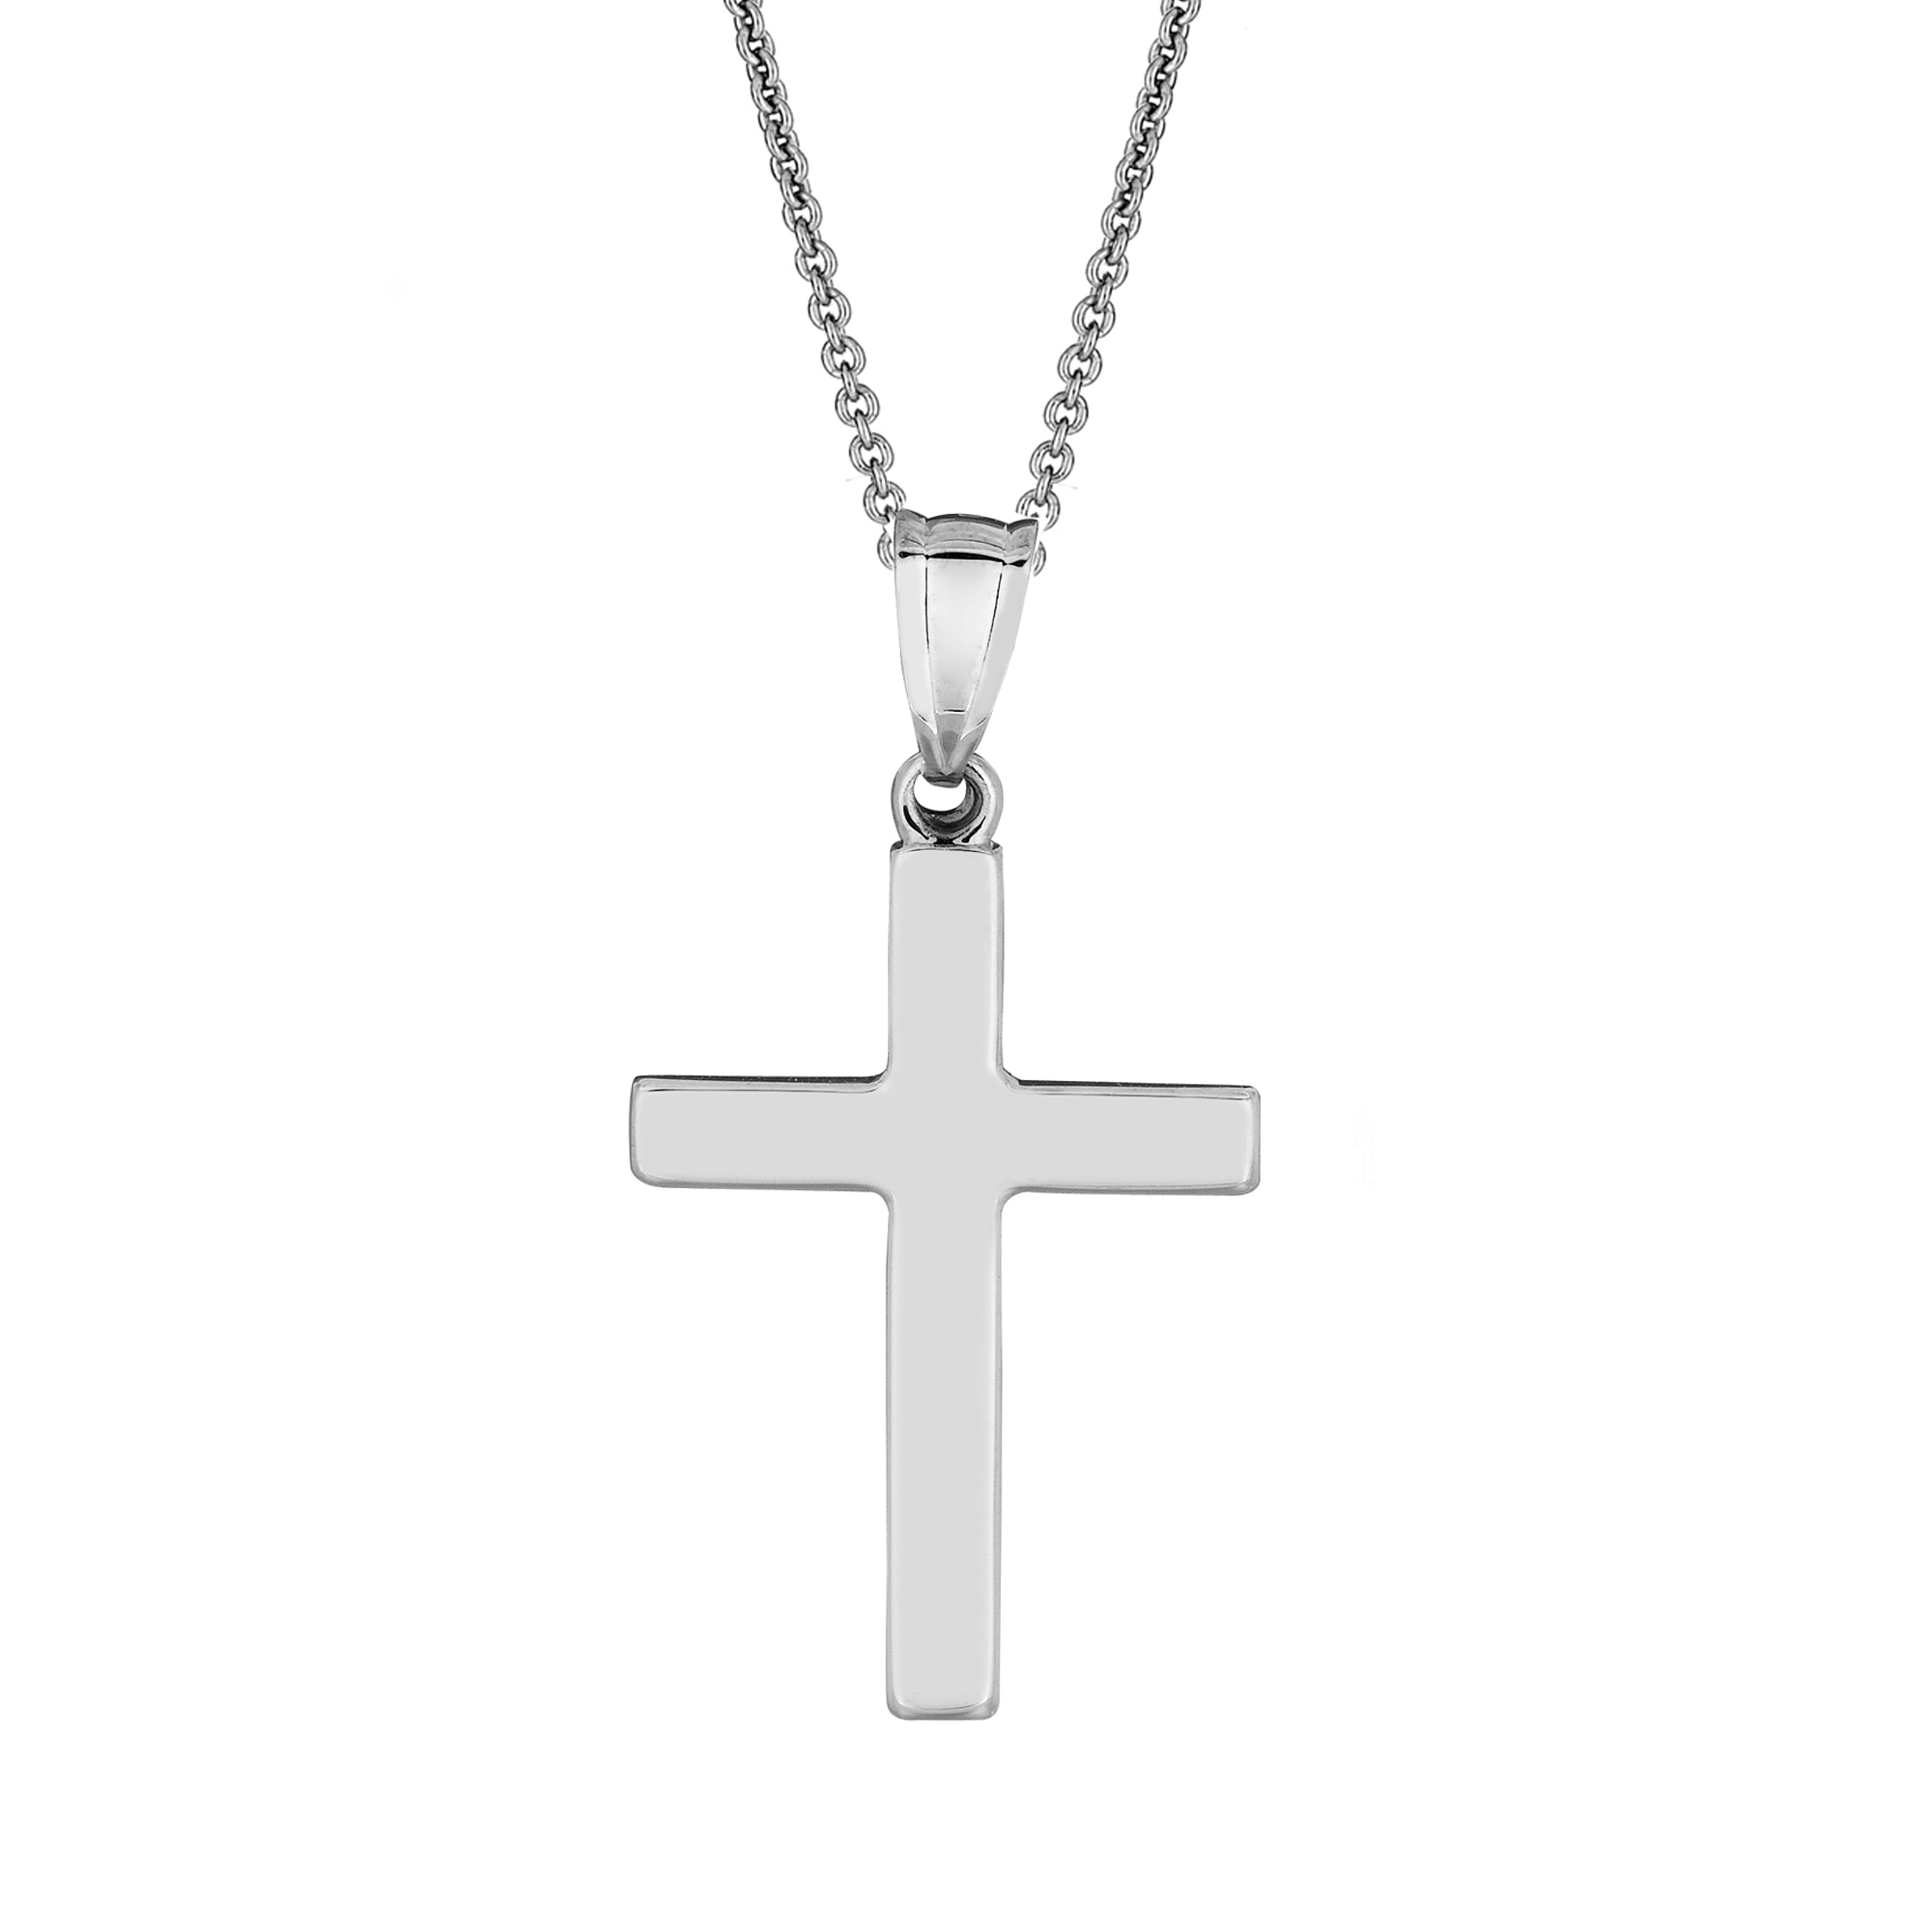 Ritastephens Sterling Silver Mini Crucifix Cross Small Pendant Necklace 16, 18, 20 Inches